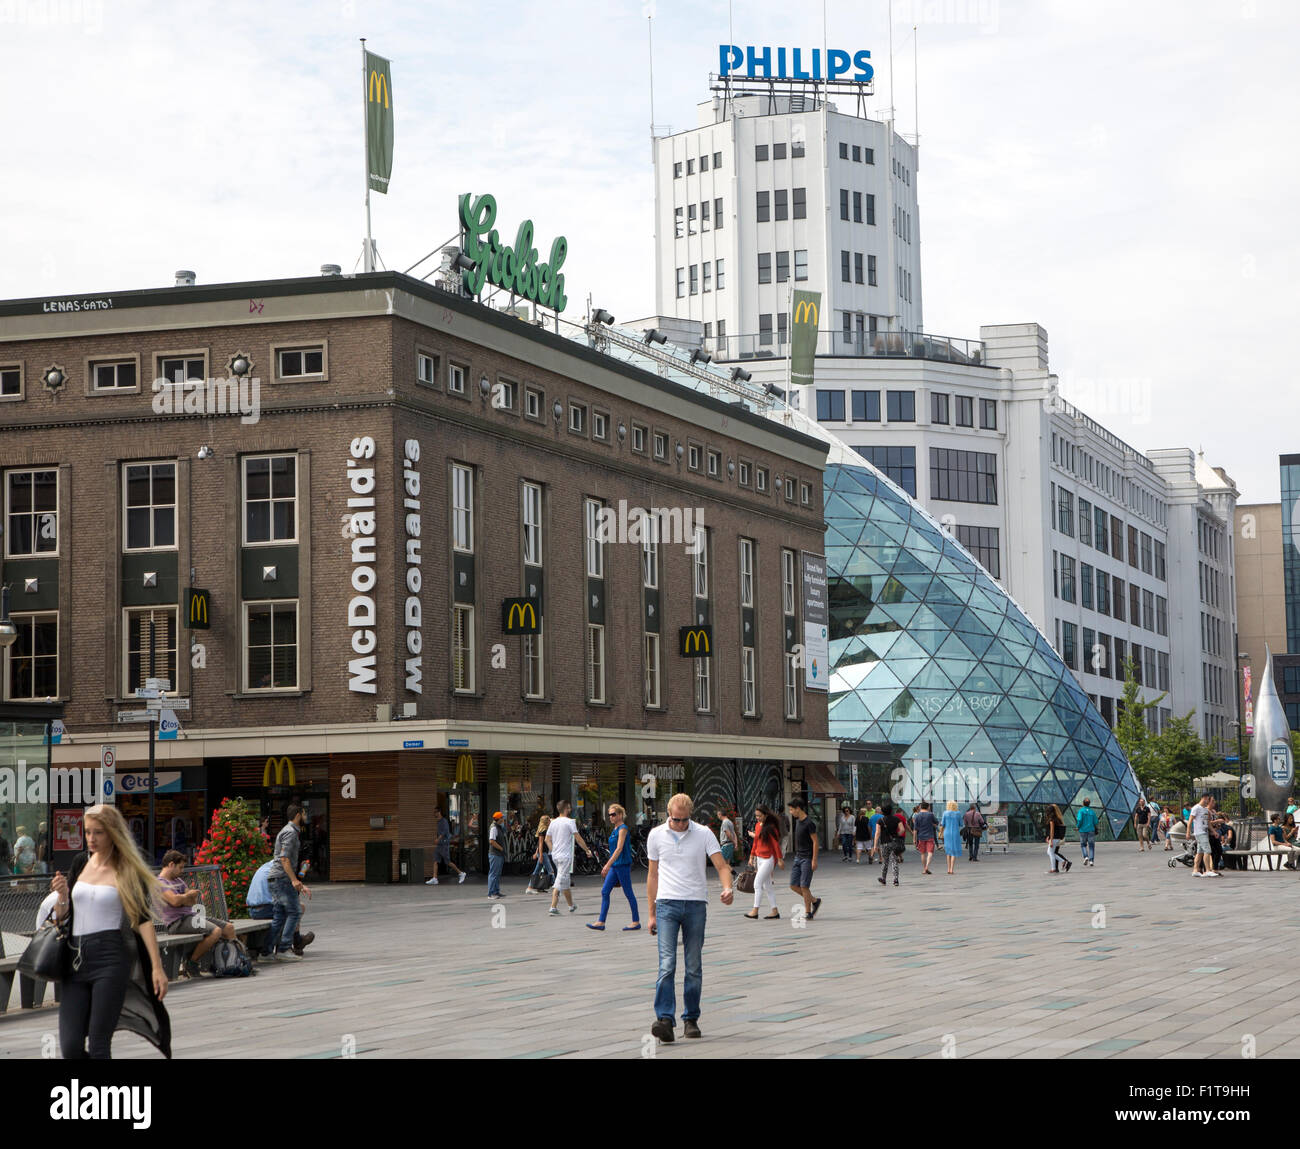 Philips Light Tower In Eindhoven: The Netherlands Philips Electronics Stock Photos & The